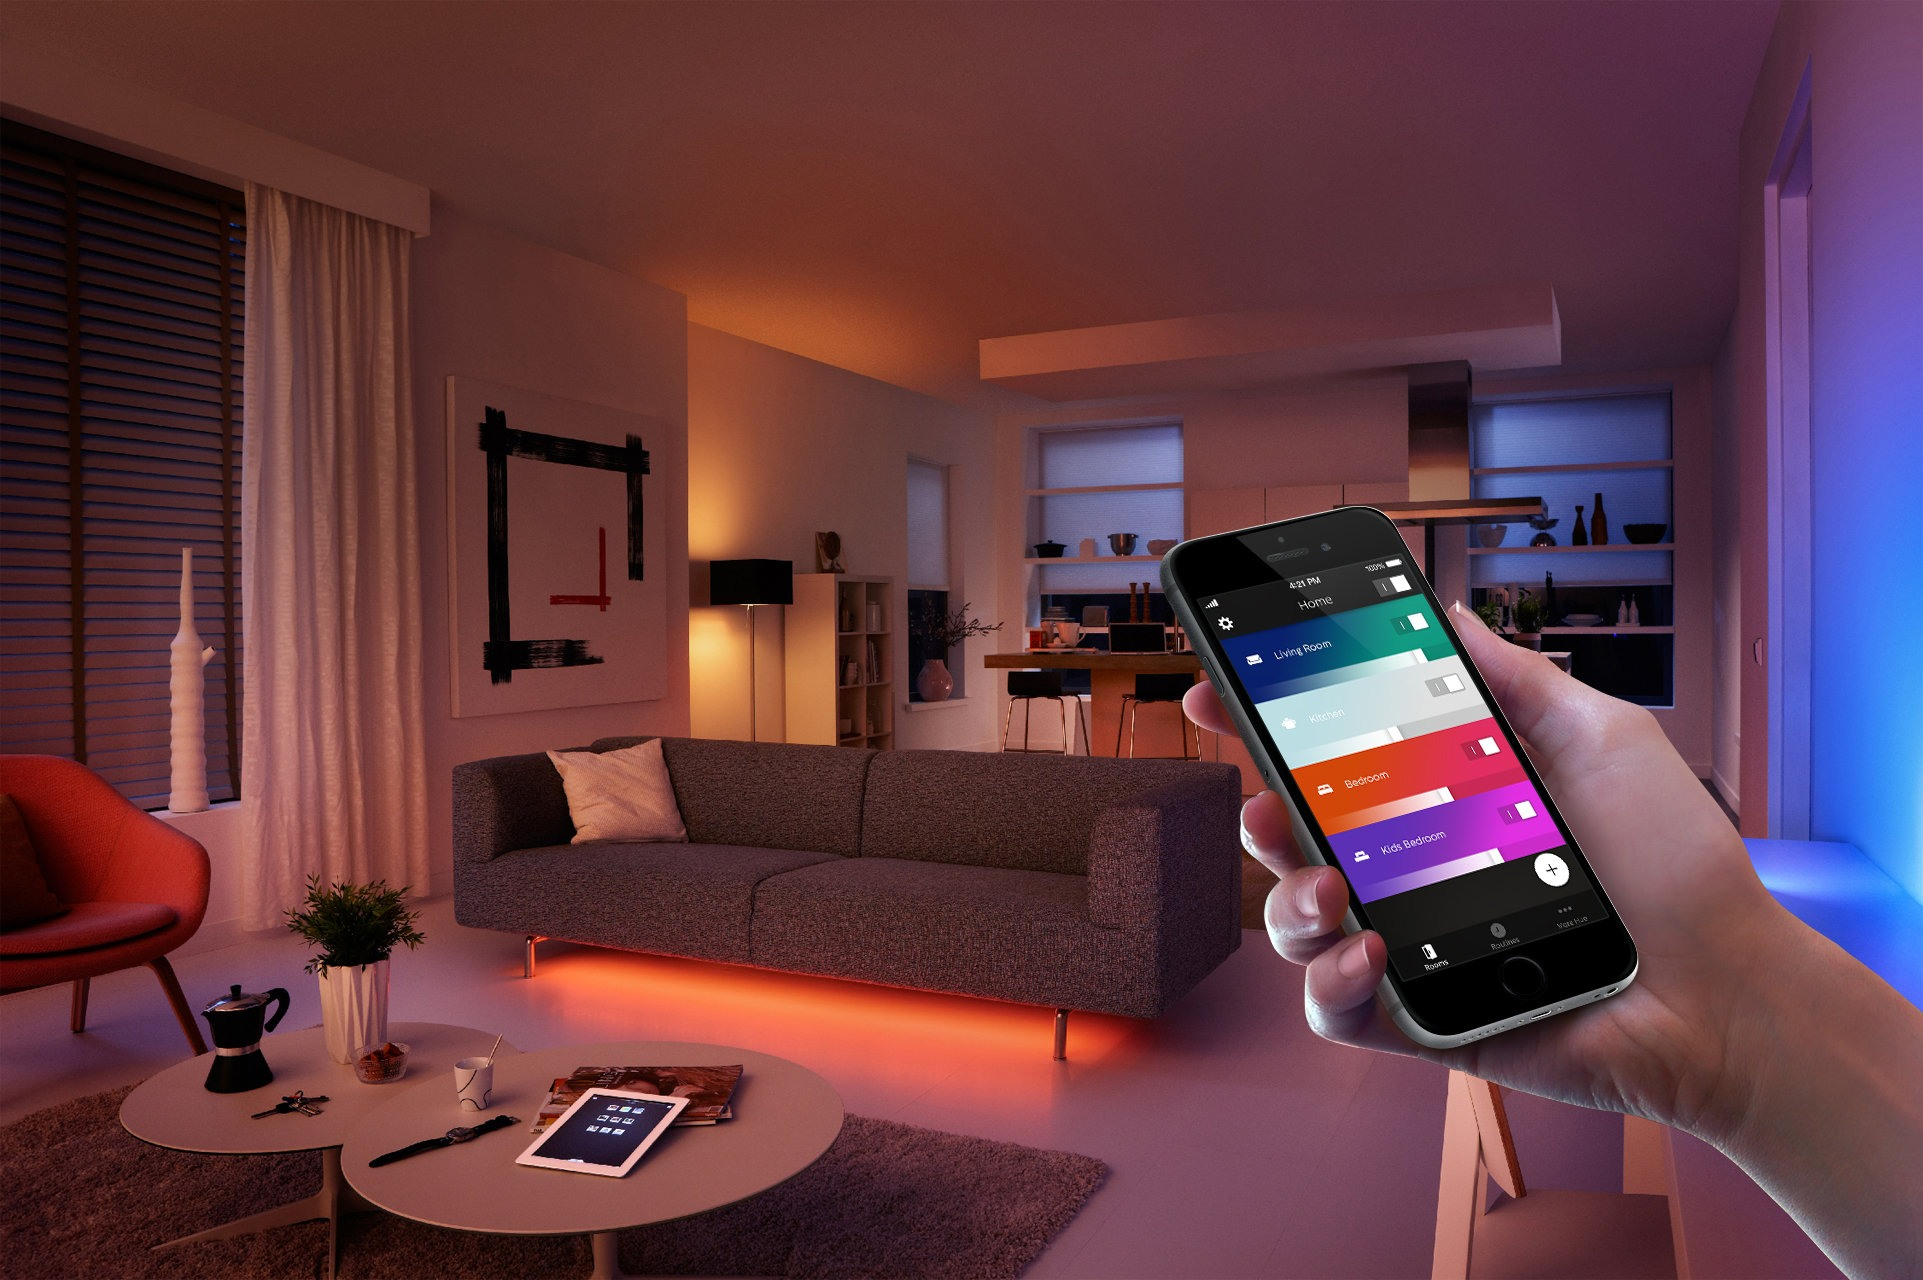 Smart lights in living room